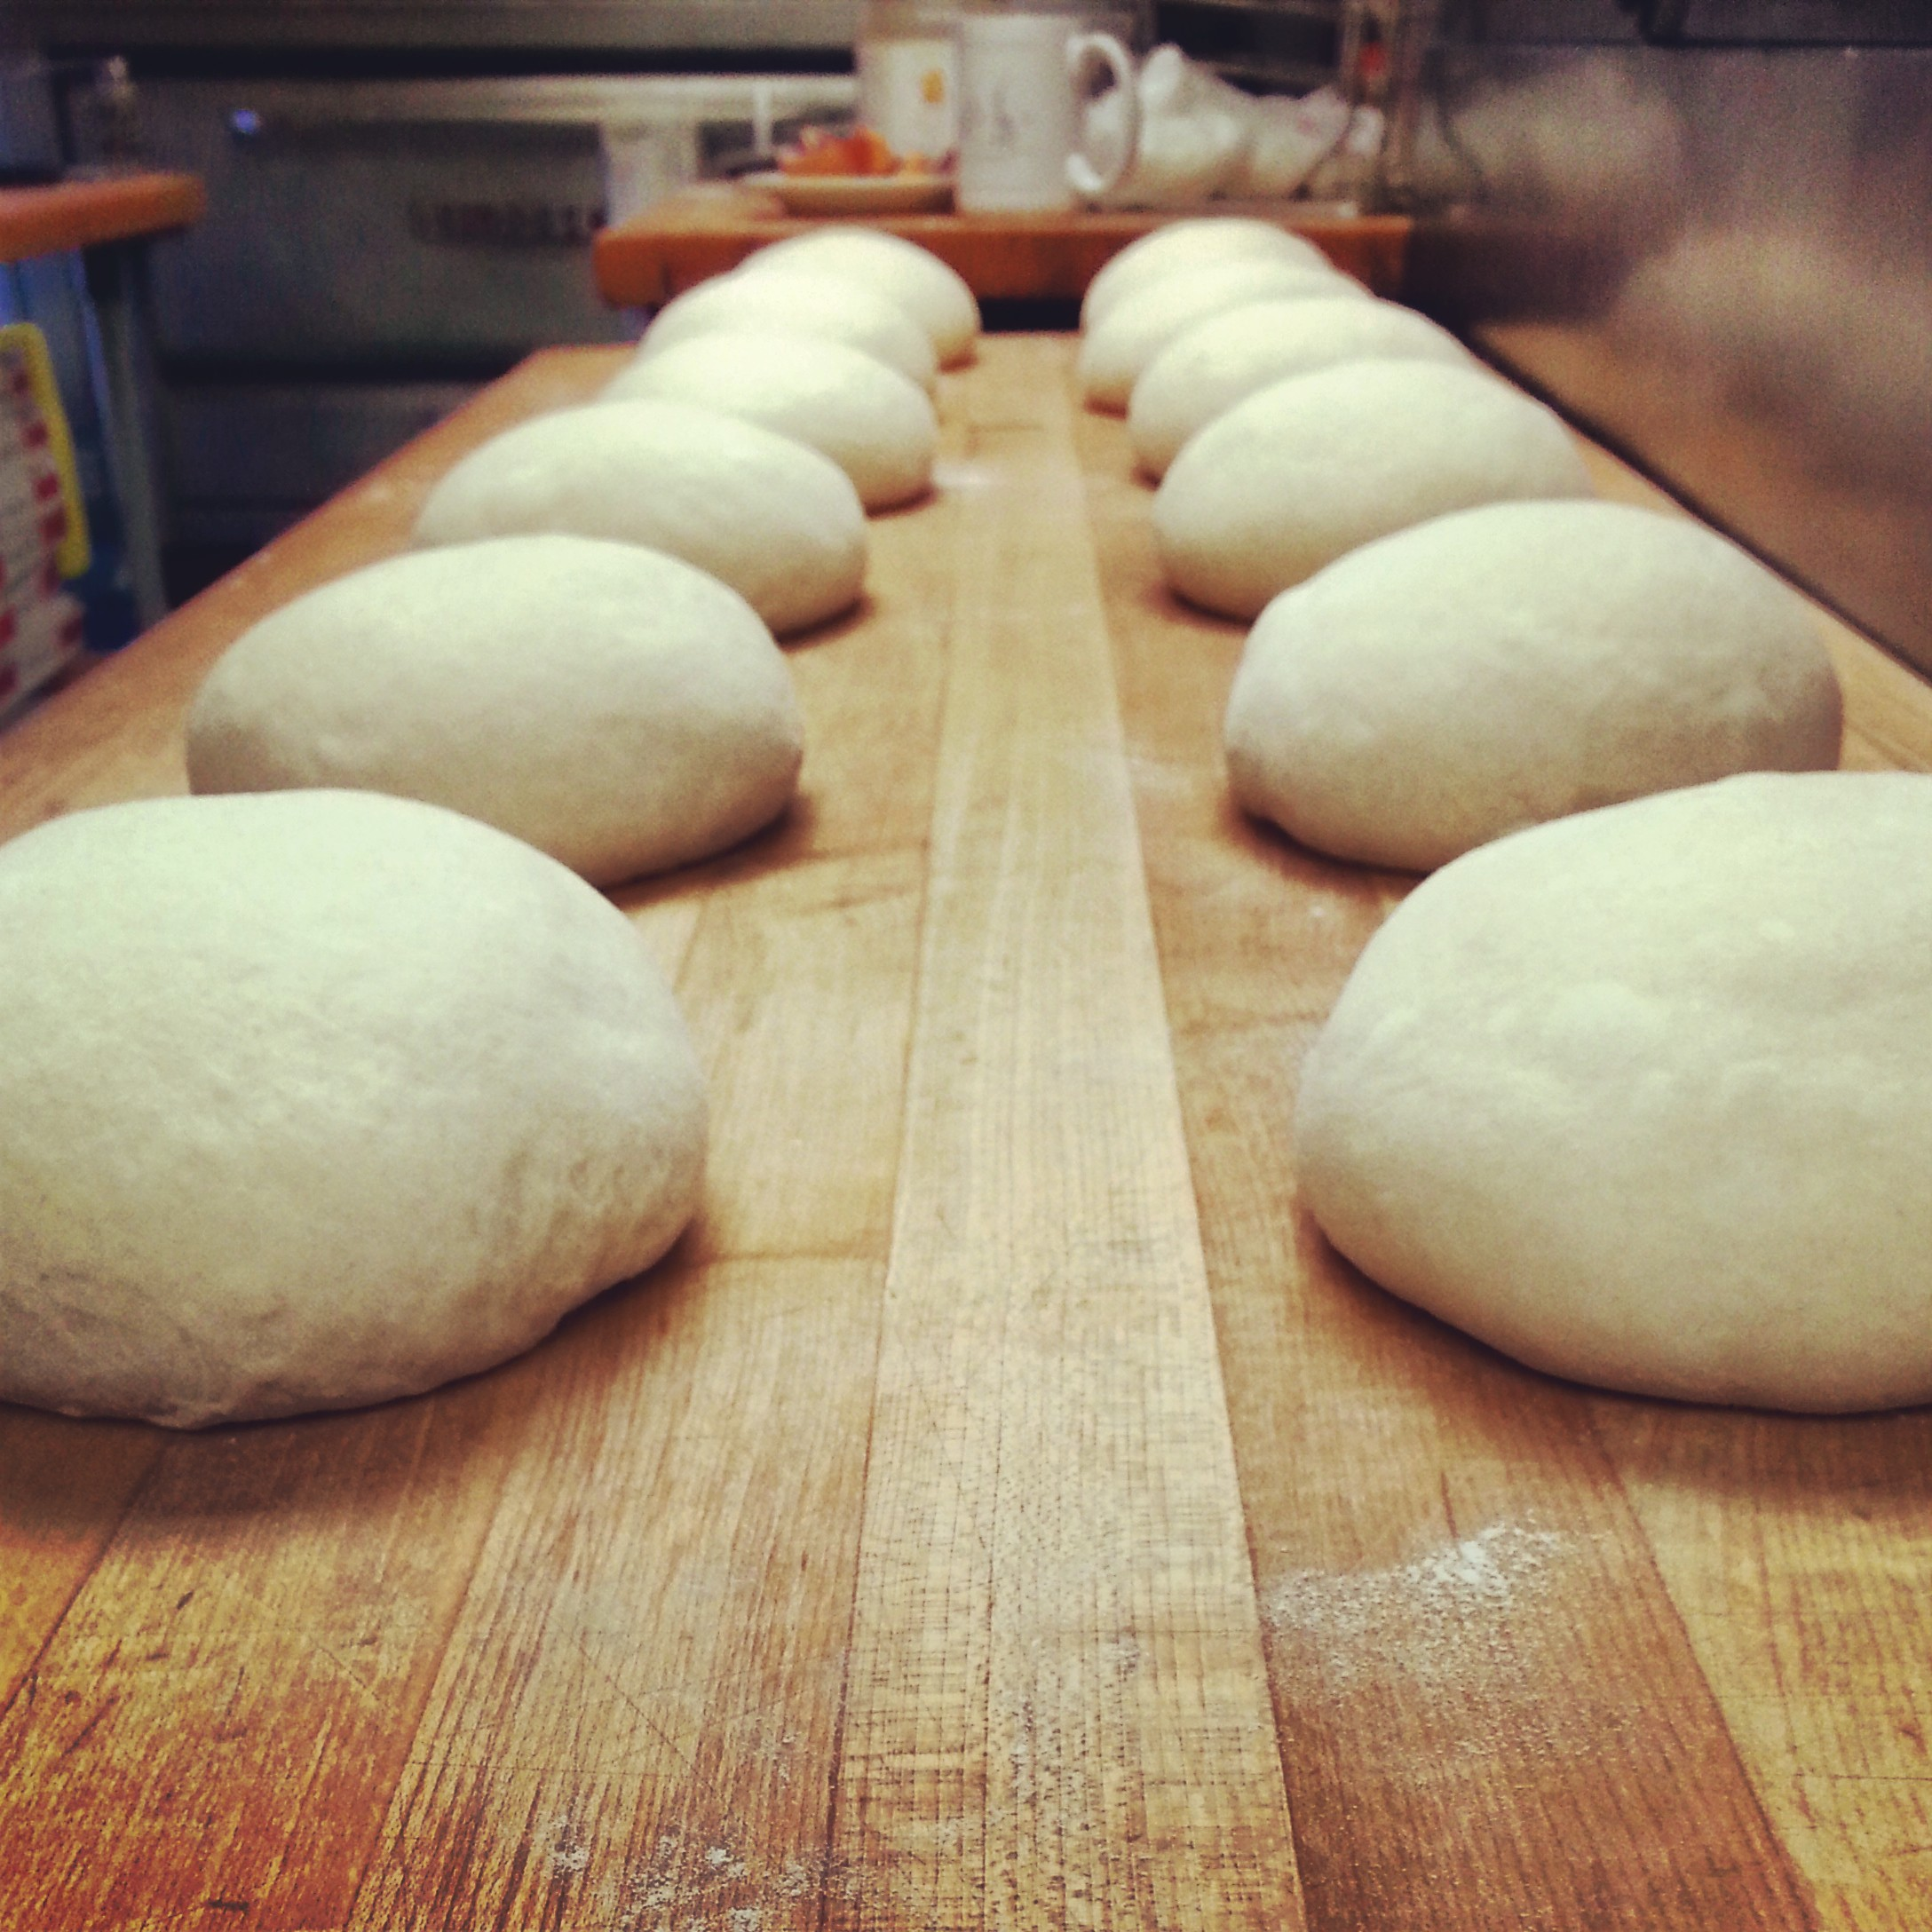 Perfectly formed dough balls.